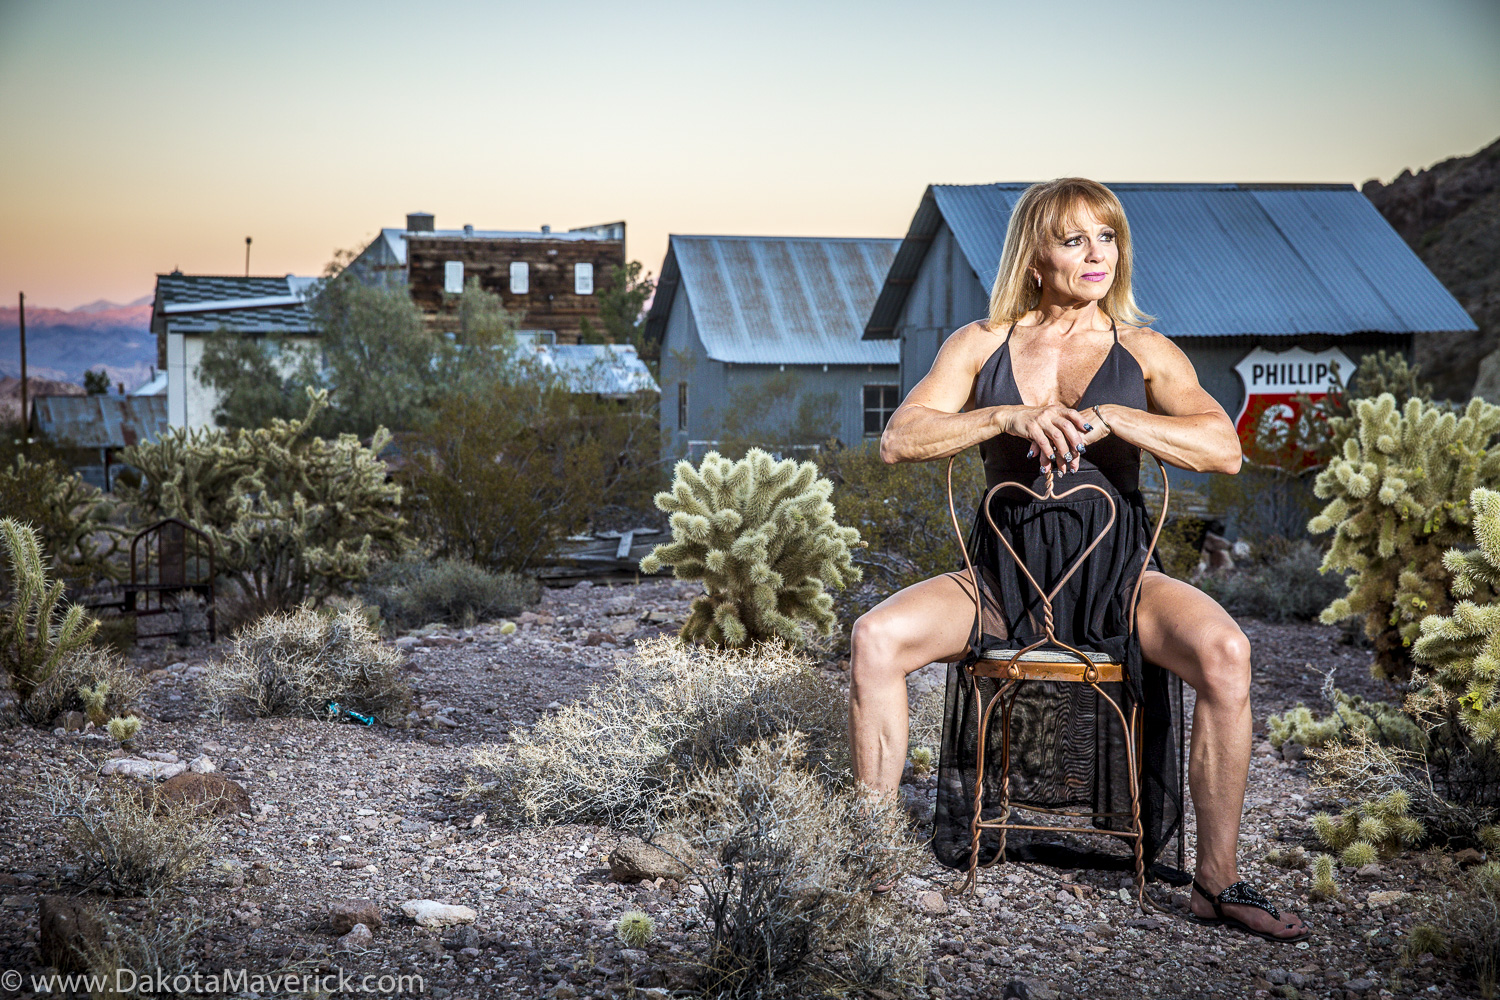 Vancouver Fitness Photographer - Nelson Ghost Town, Nevada - Fashion Fitness Shoot (13 of 40).jpg